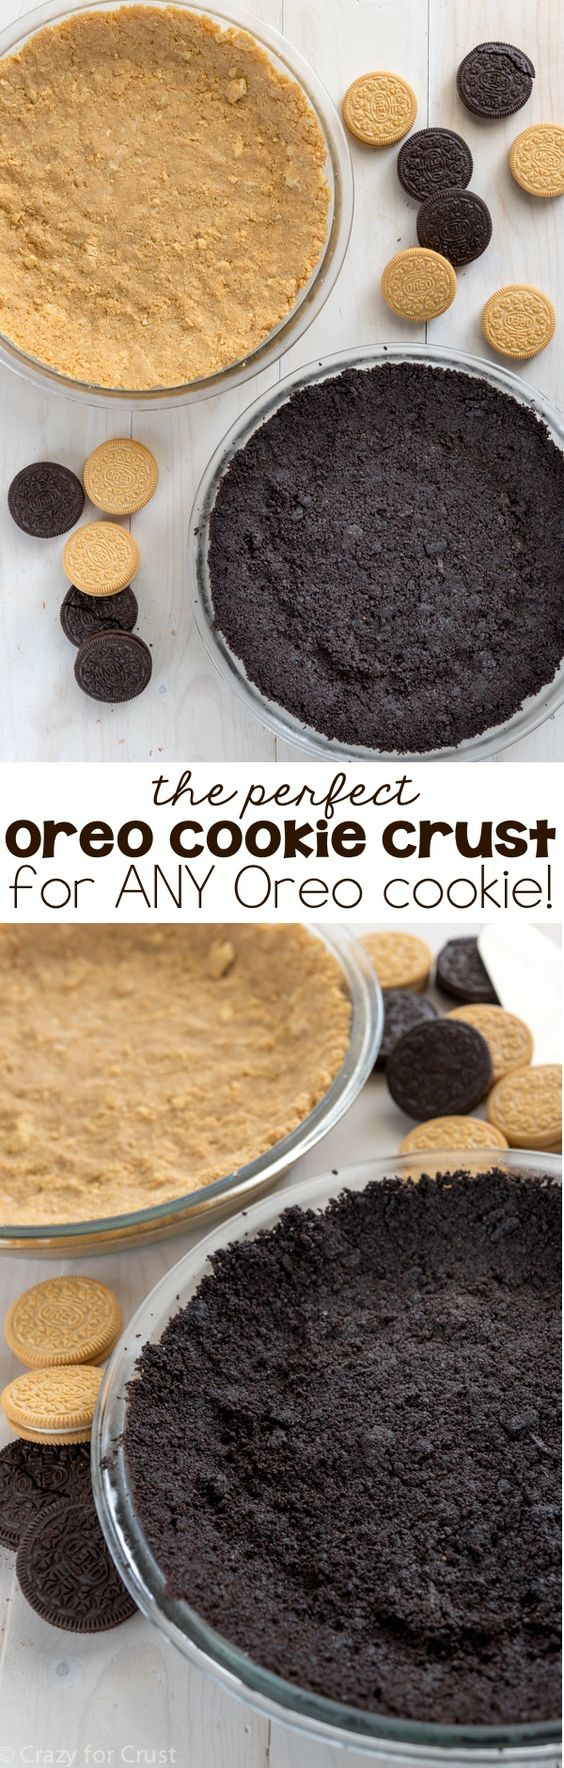 An EASY no-bake Oreo Cookie Crust recipe that works with any flavor Oreo cookie! Only 2 ingredients to the perfect crust for any pie.